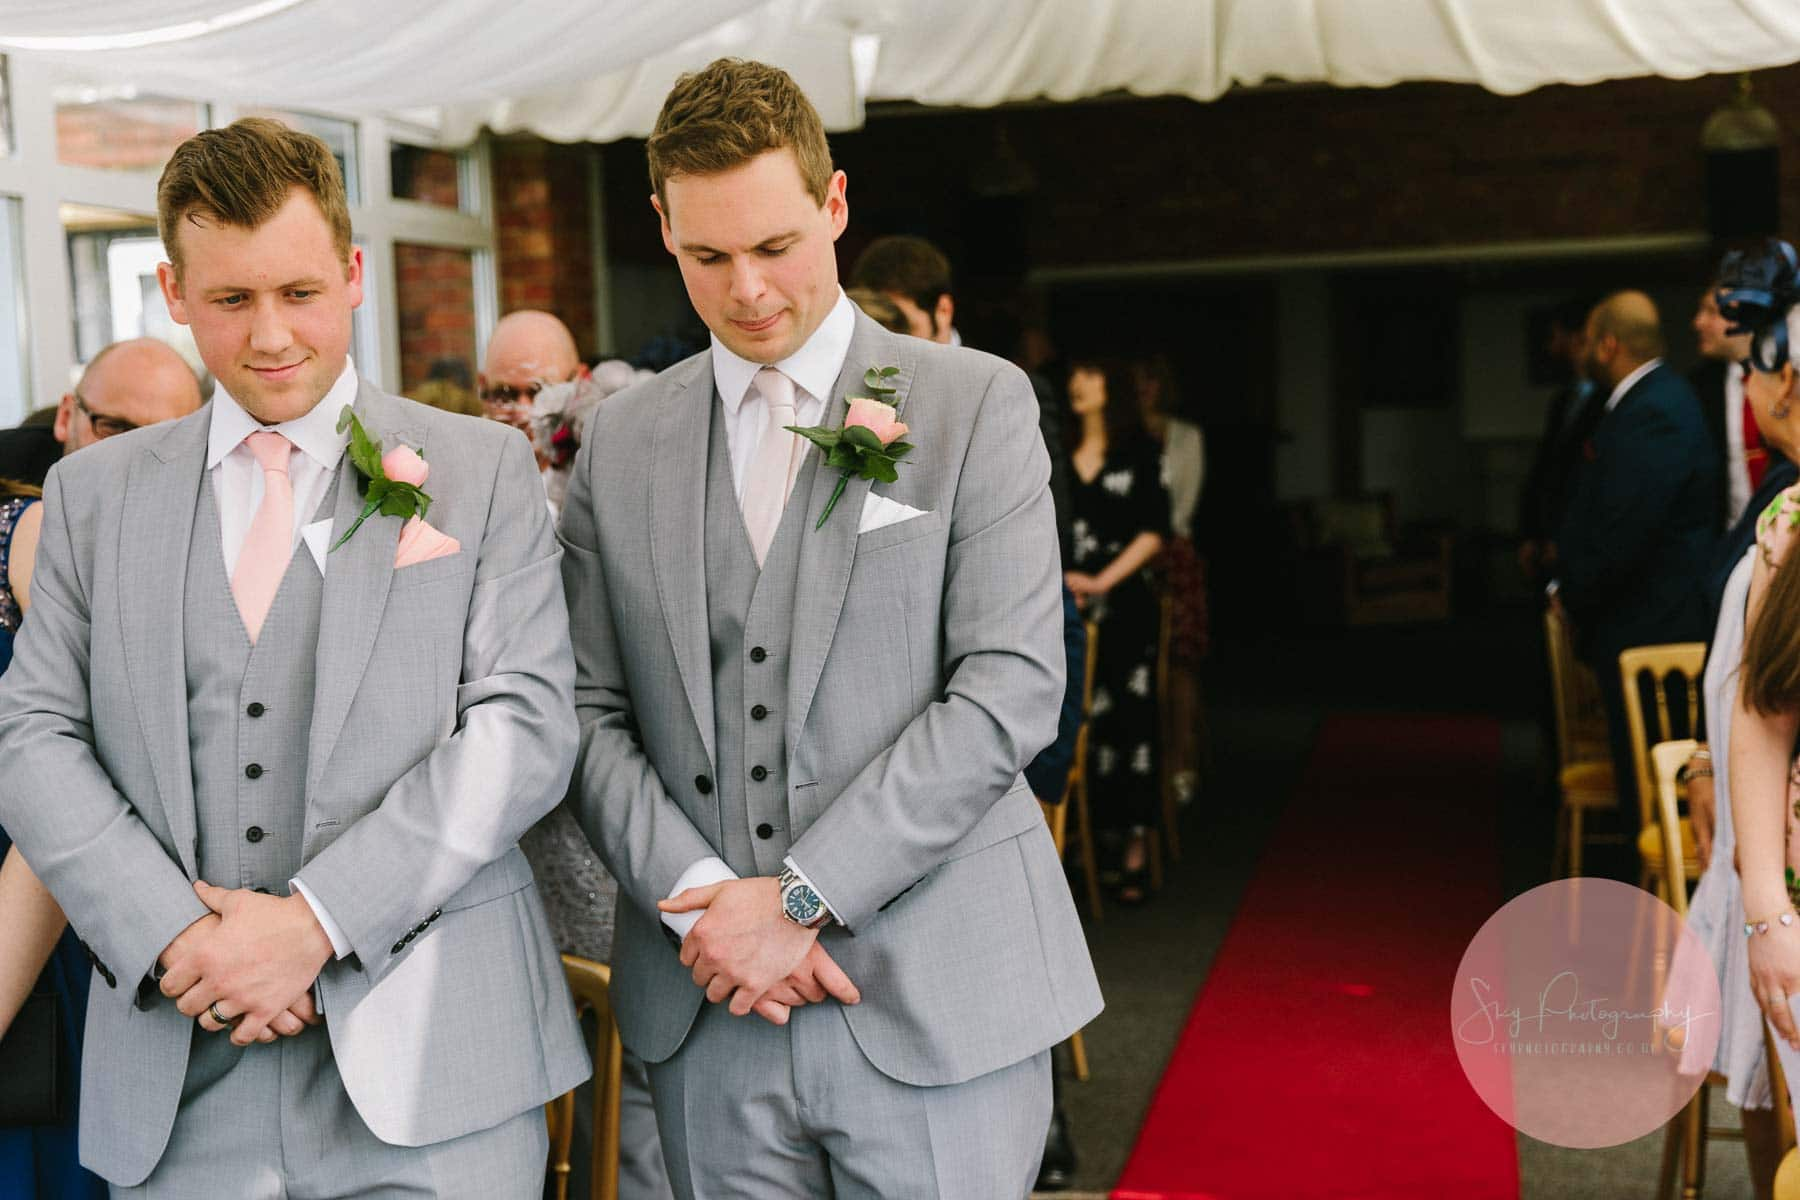 Groom anxiously waiting for bride to come down the aisle